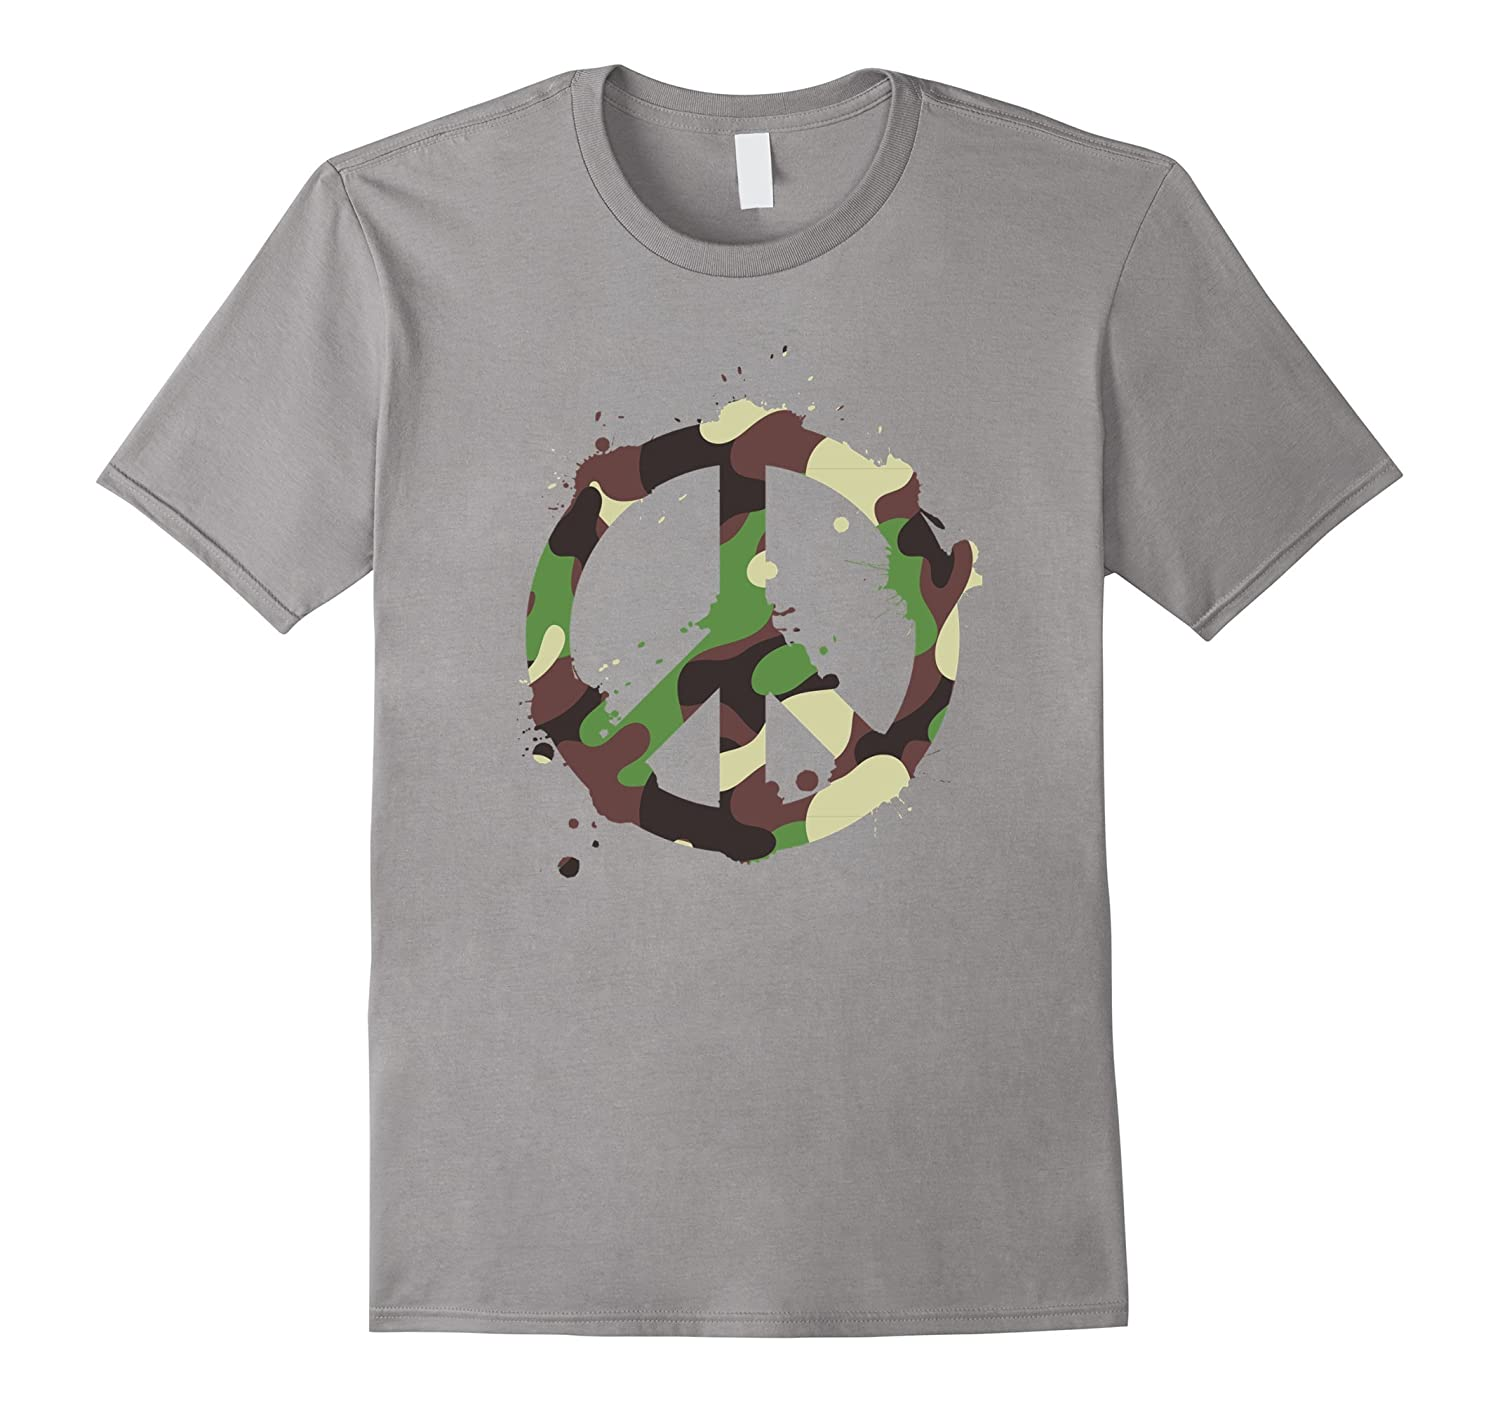 Peace symbol camouflage t shirt design goatstee for Camouflage t shirt design